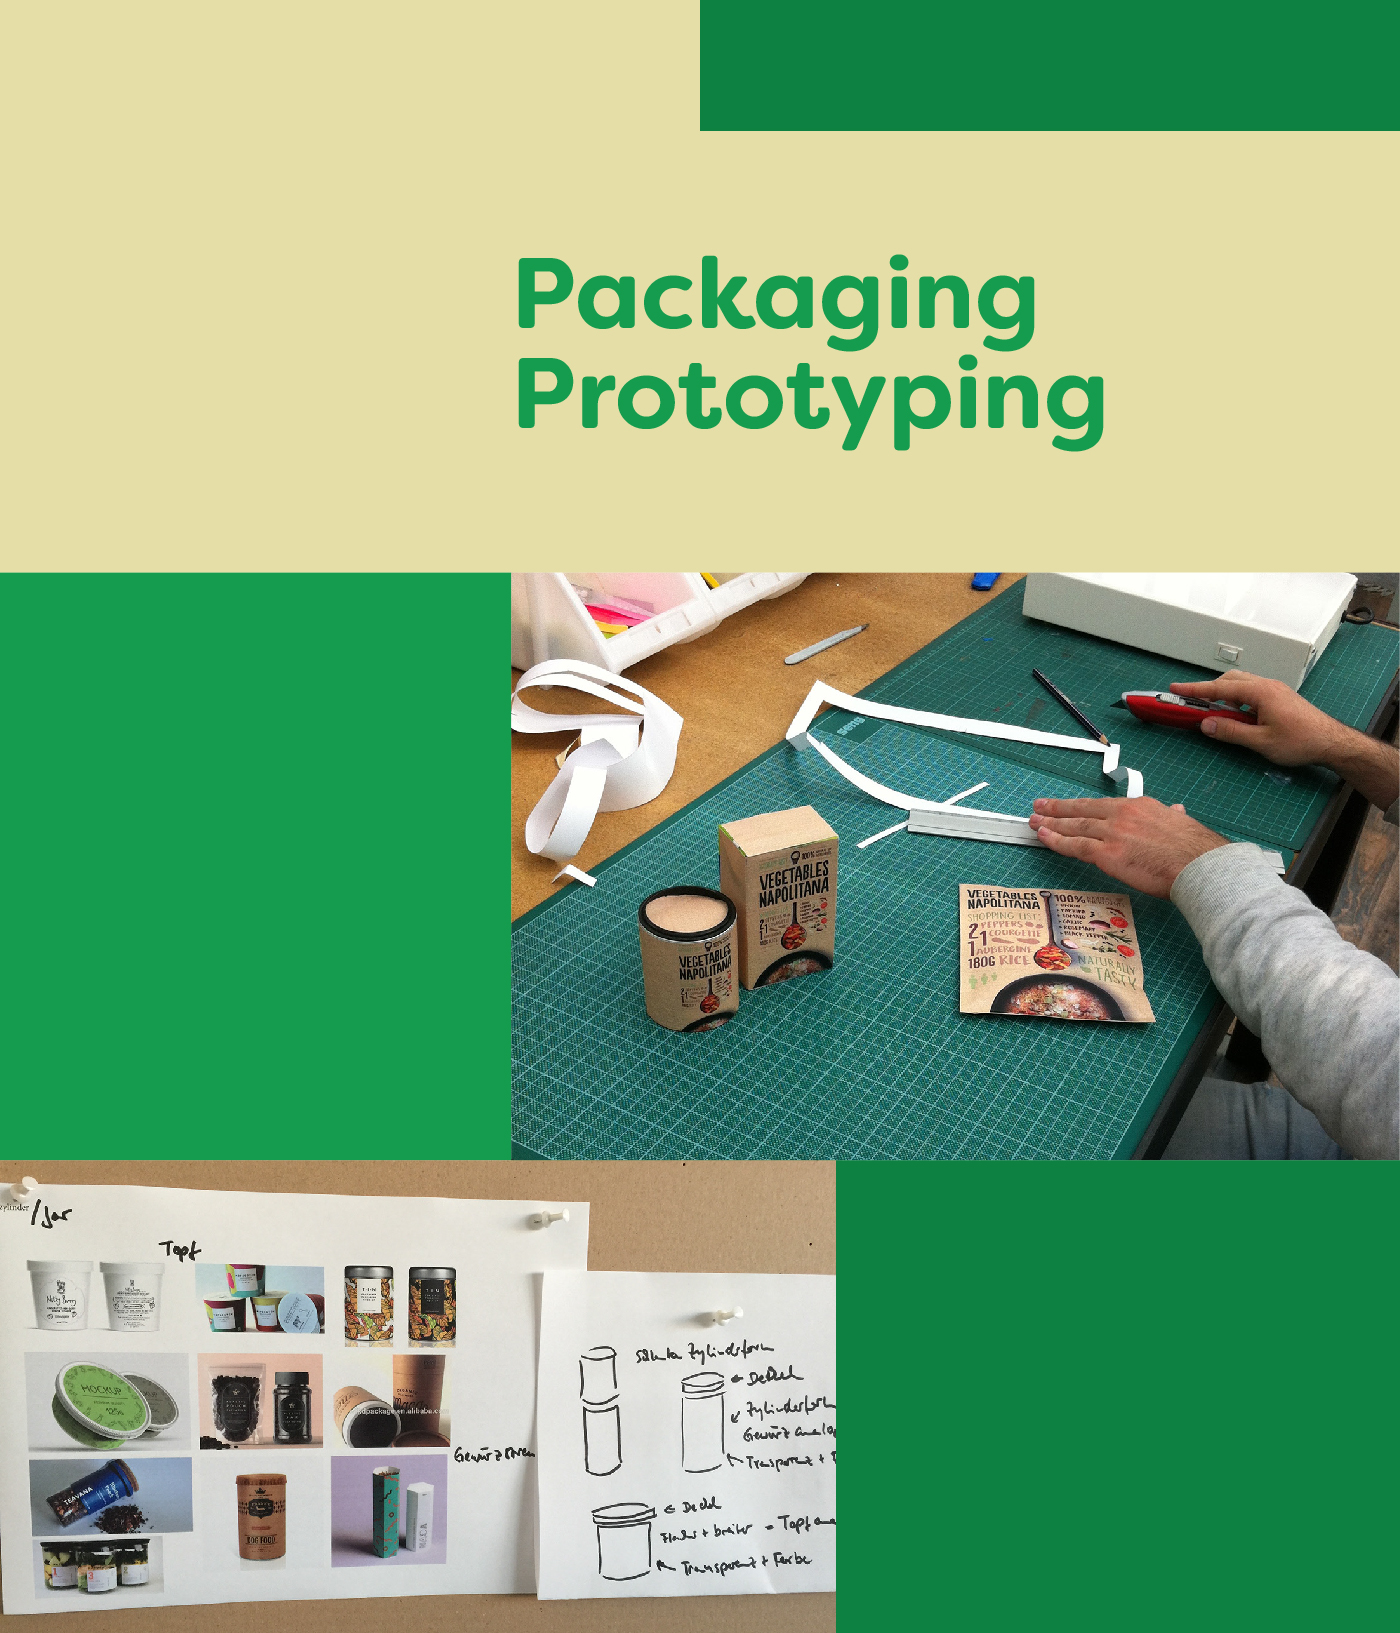 Packaging prototyping